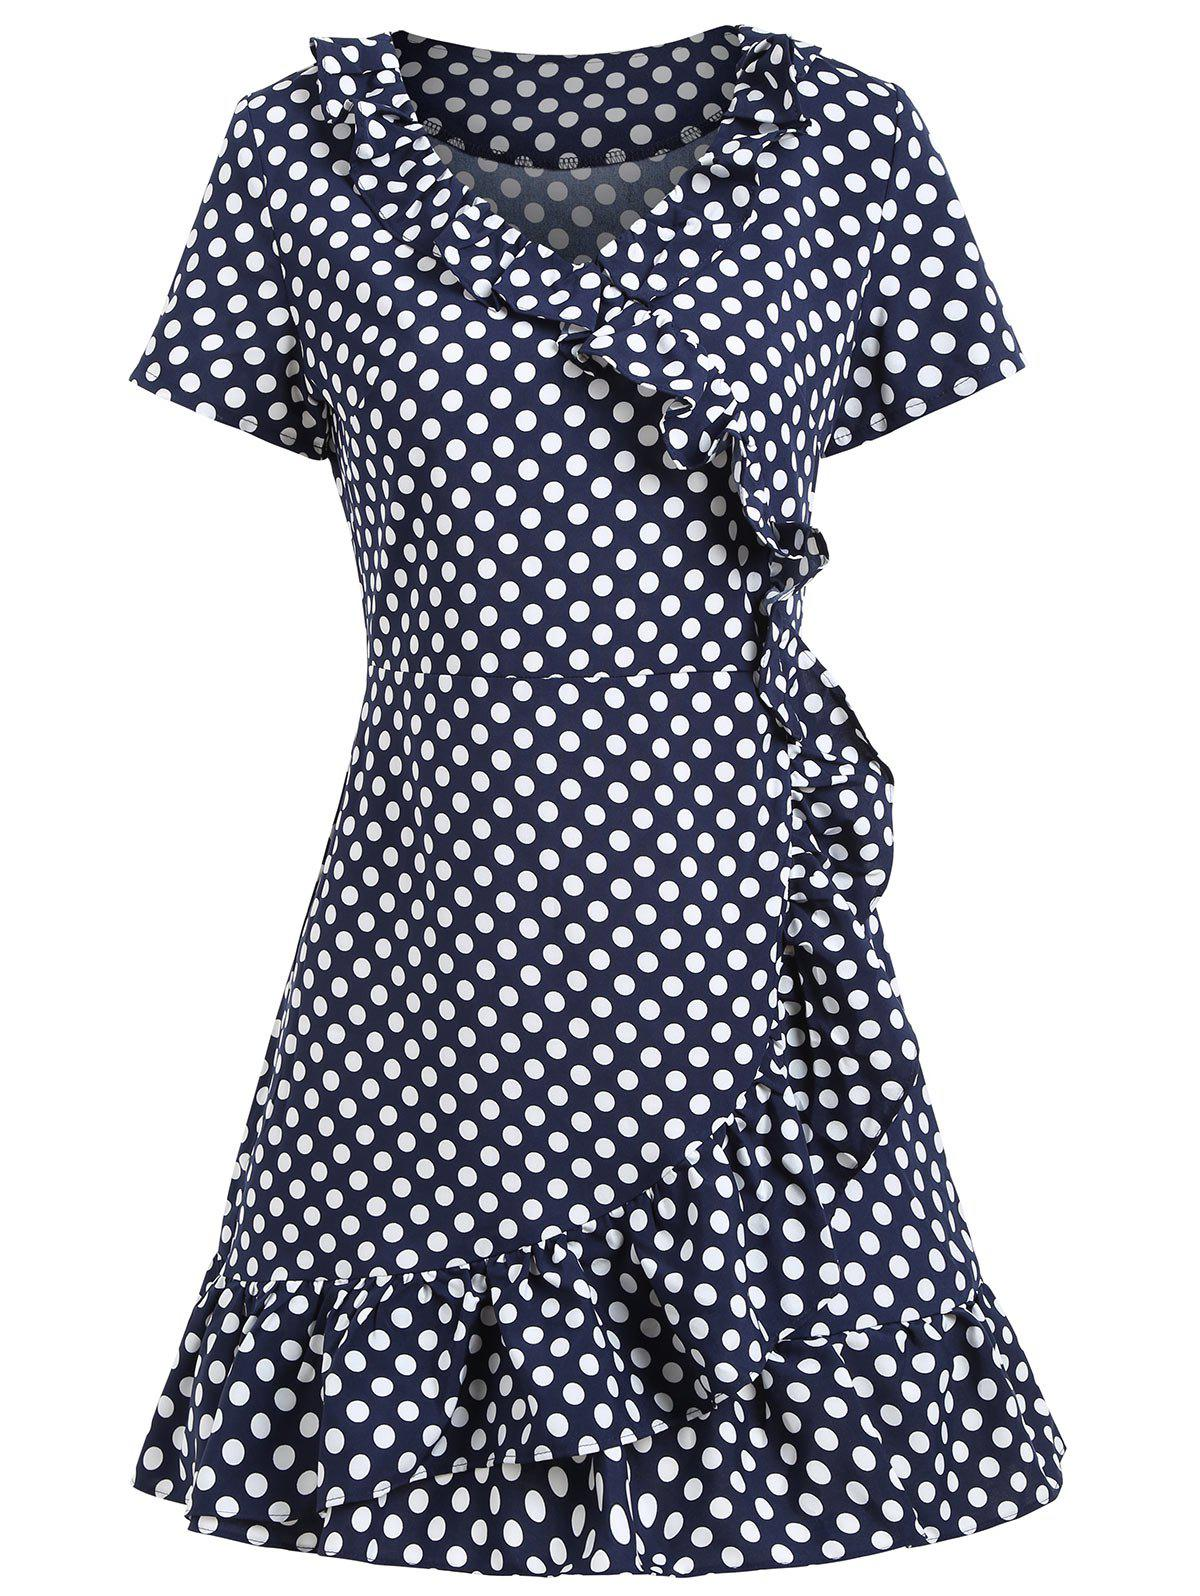 Polka Dot Ruffles Mini Dress - BLUE/WHITE XL